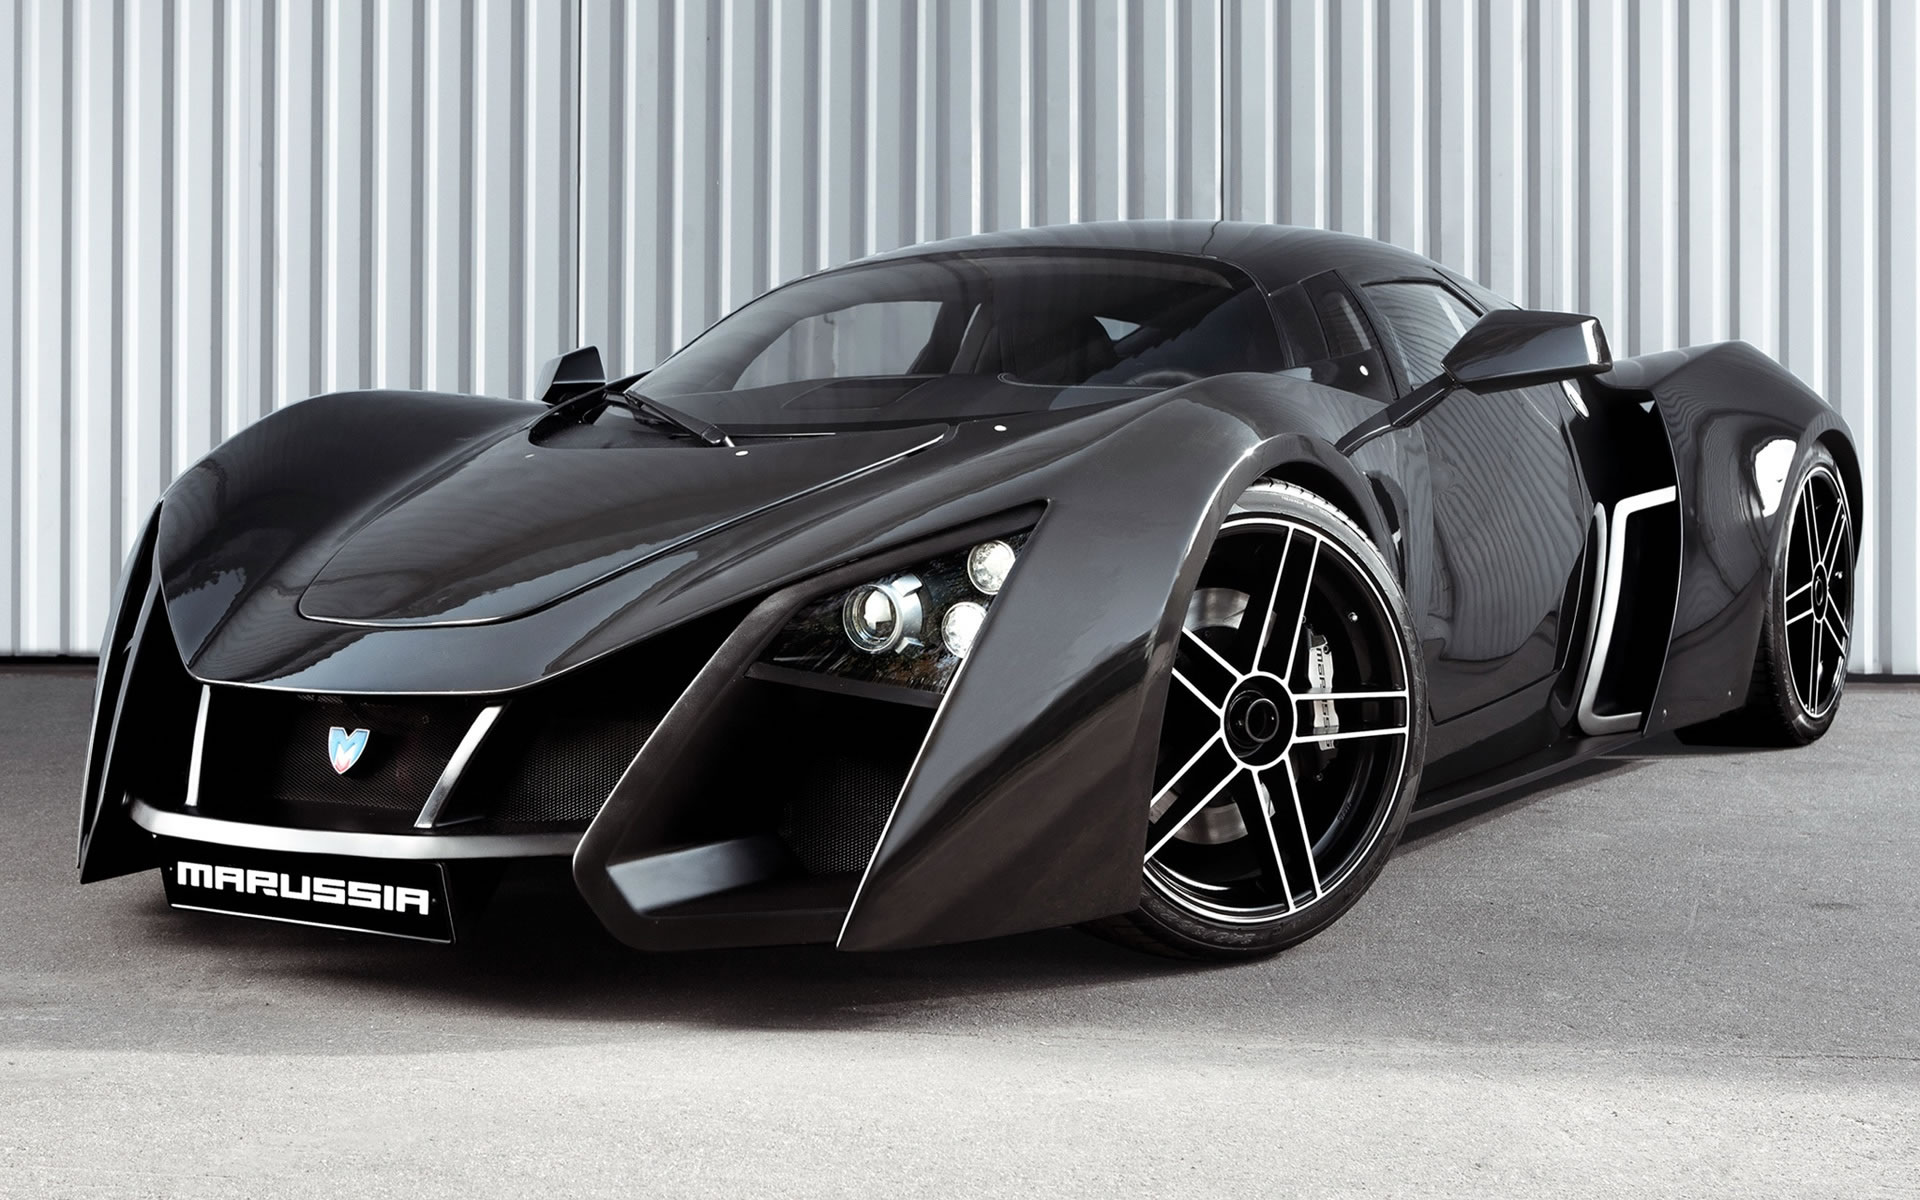 Wallpaper Marussia B2 Coches De Lujo Wallpapers Wallpapers